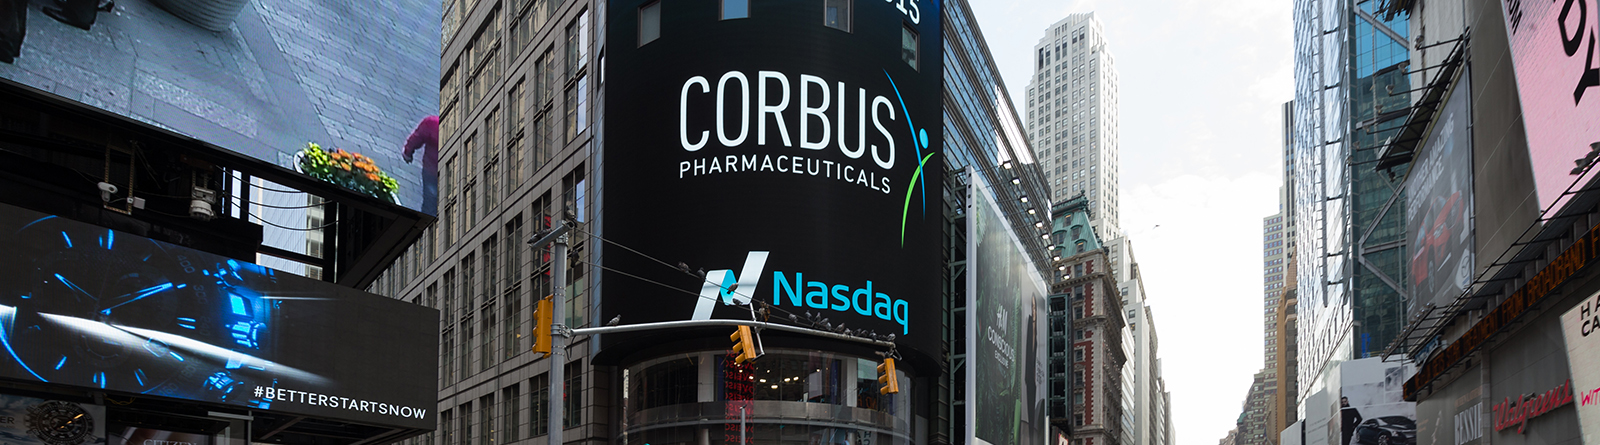 Corbus Pharmaceuticals Reports 2015 Third Quarter Financial Results Banner